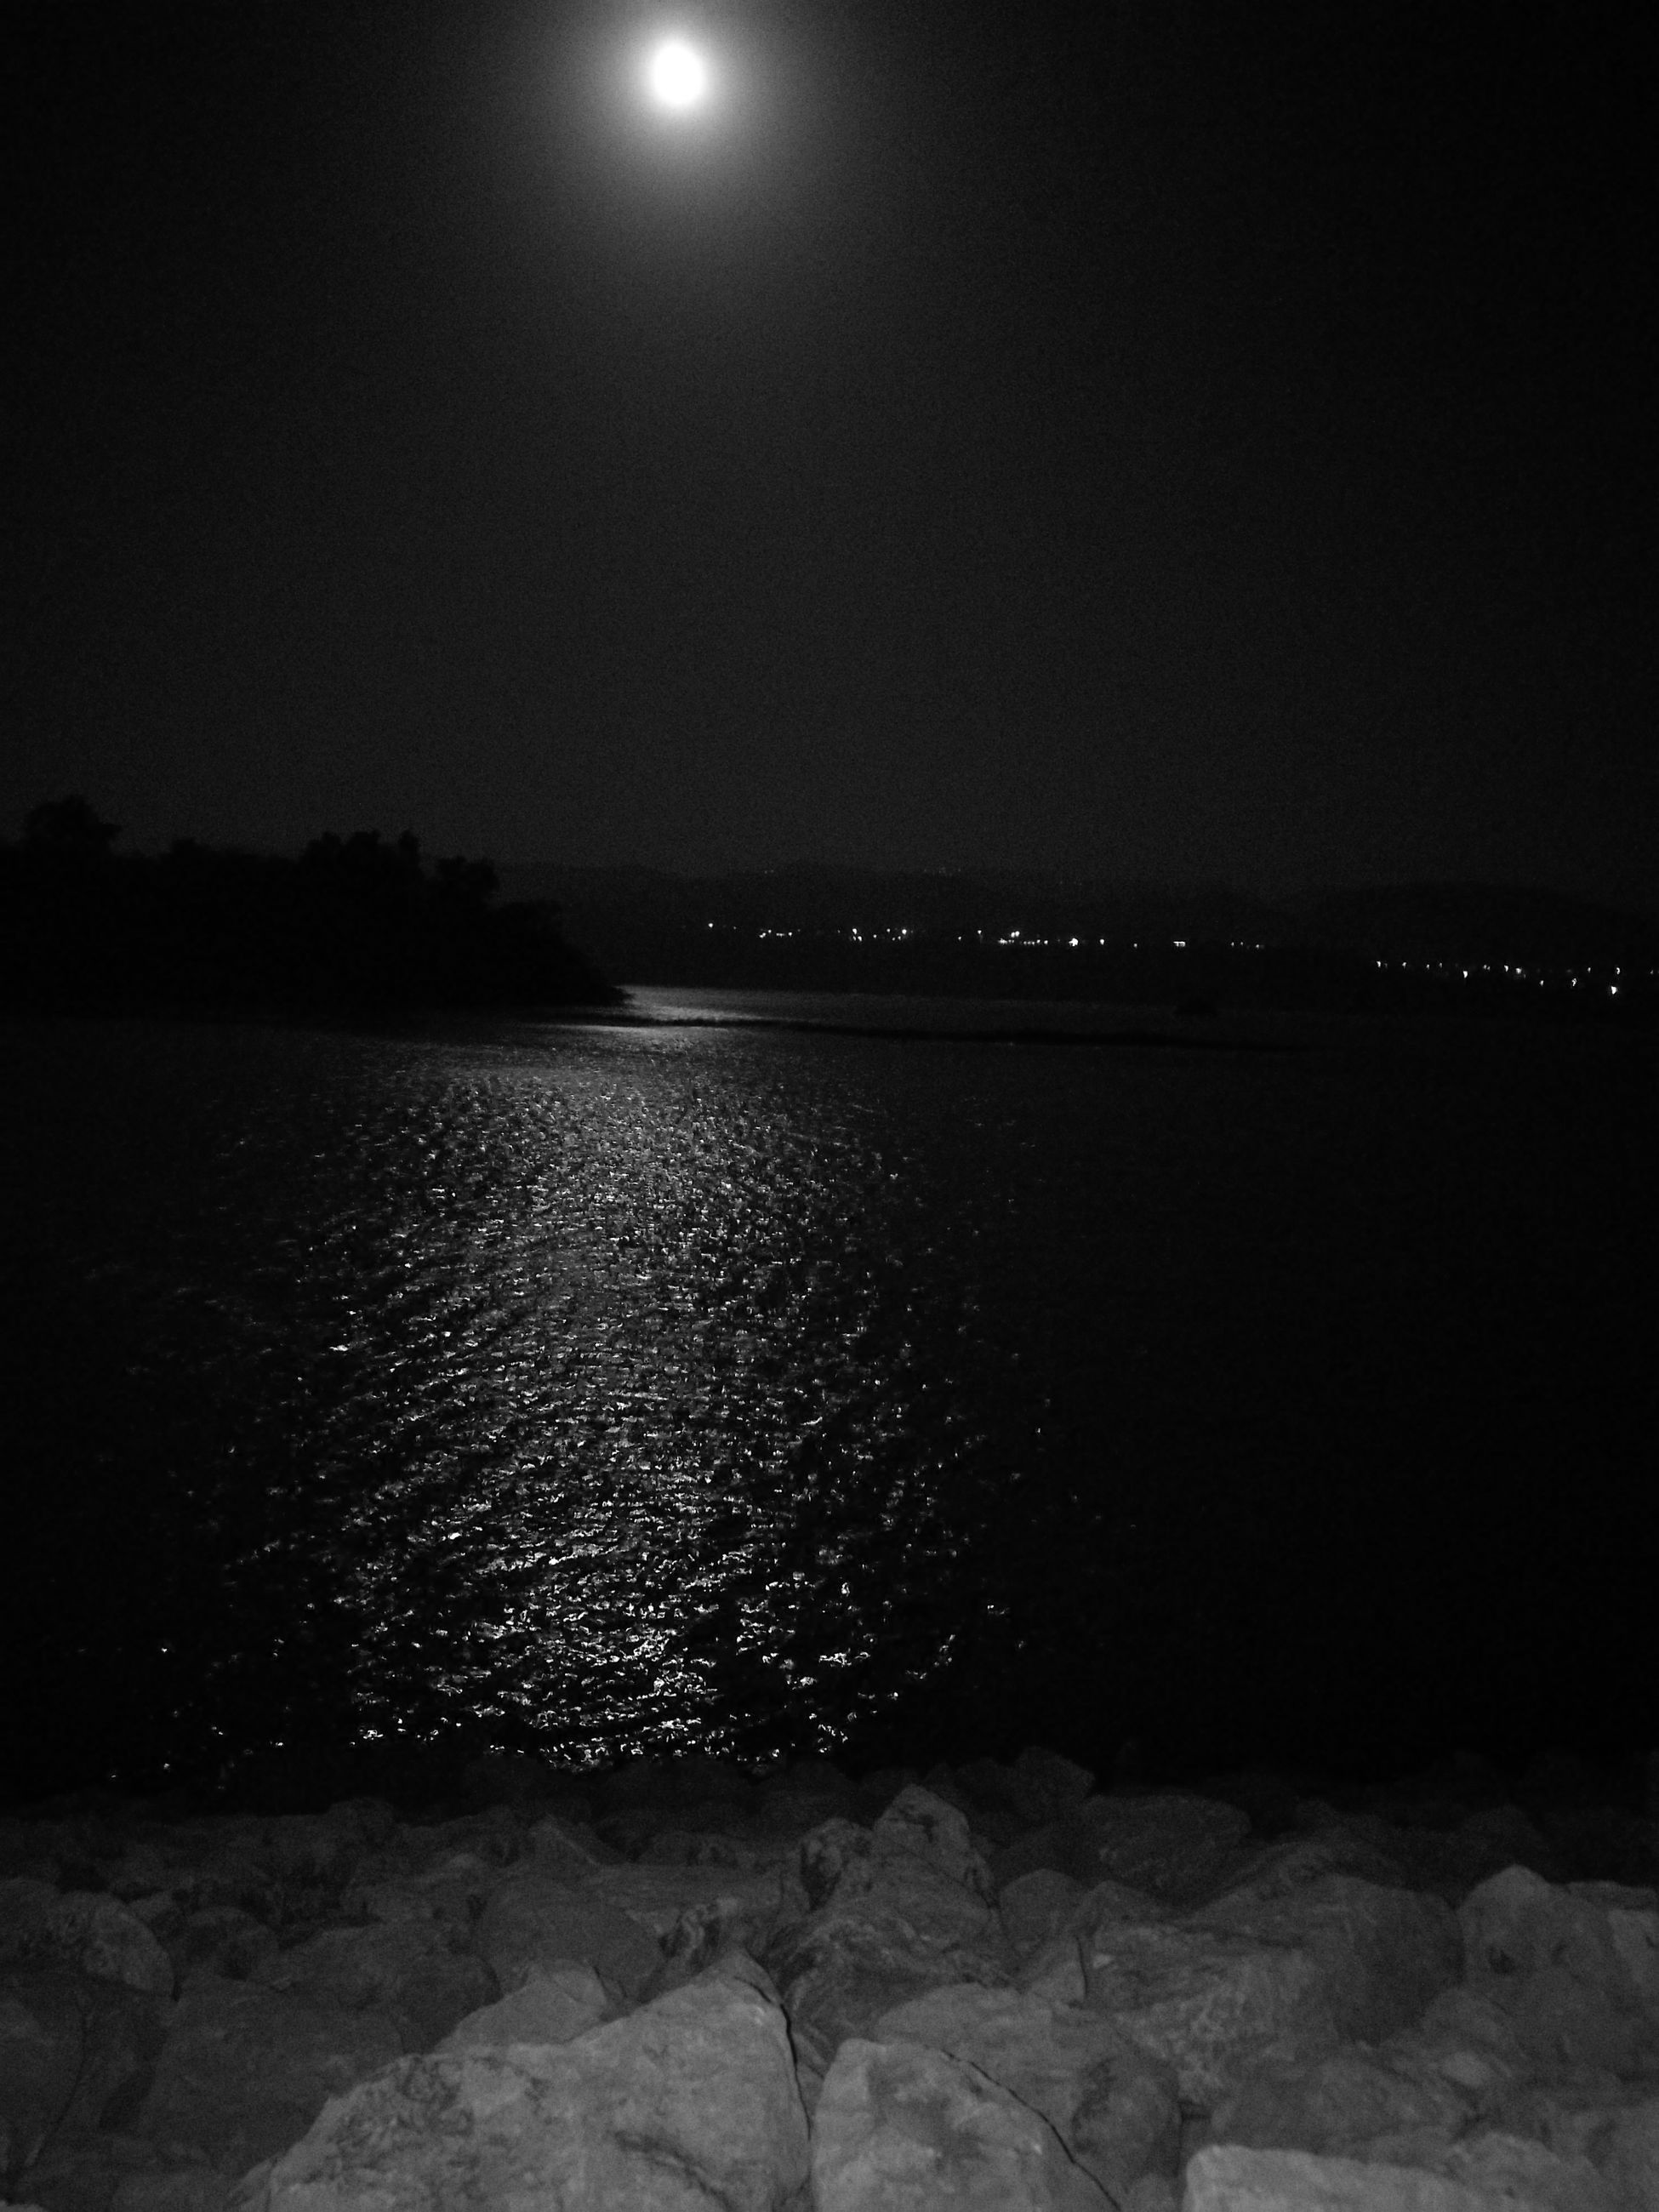 moon, night, water, tranquil scene, scenics, tranquility, glowing, nature, sea, non-urban scene, beauty in nature, shore, outdoors, seascape, sky, riverbank, calm, distant, moonlight, no people, remote, vacations, majestic